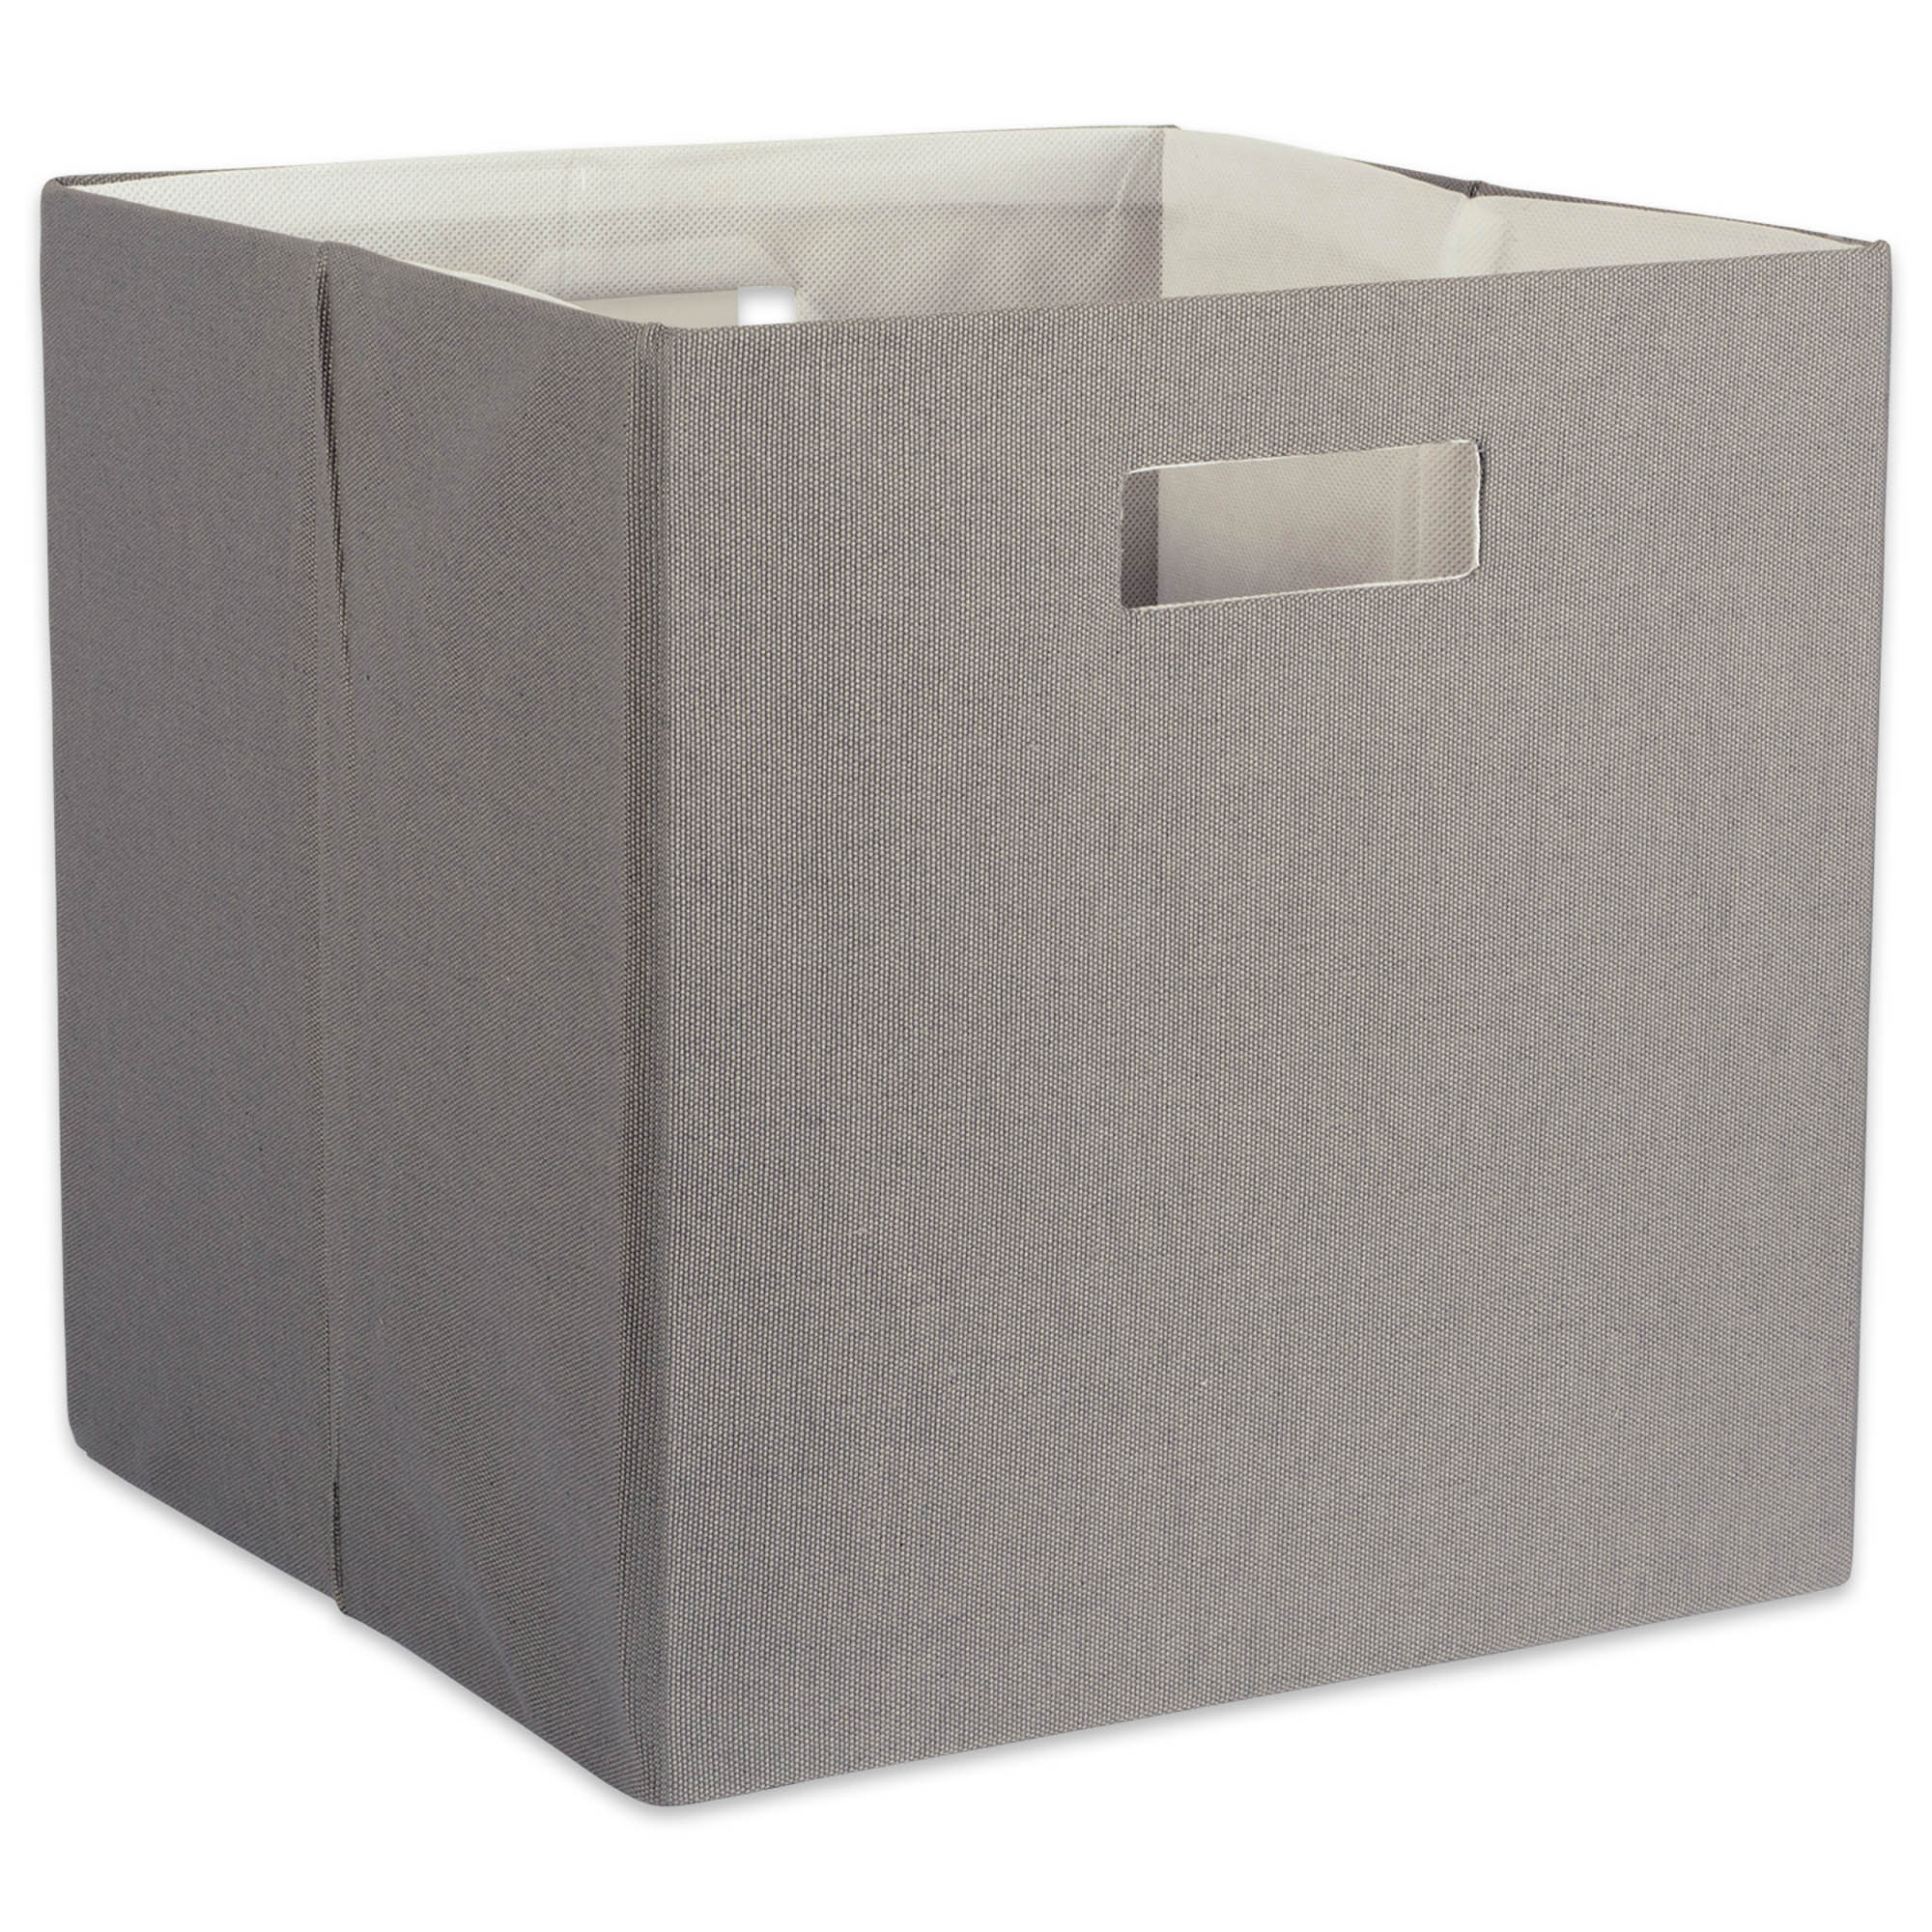 Ordinaire DII Hard Sided Collapsible Fabric Storage Container For Nursery, Offices, U0026  Home Organization, Containers Are Made To Fit Standard Cube Organizers ...